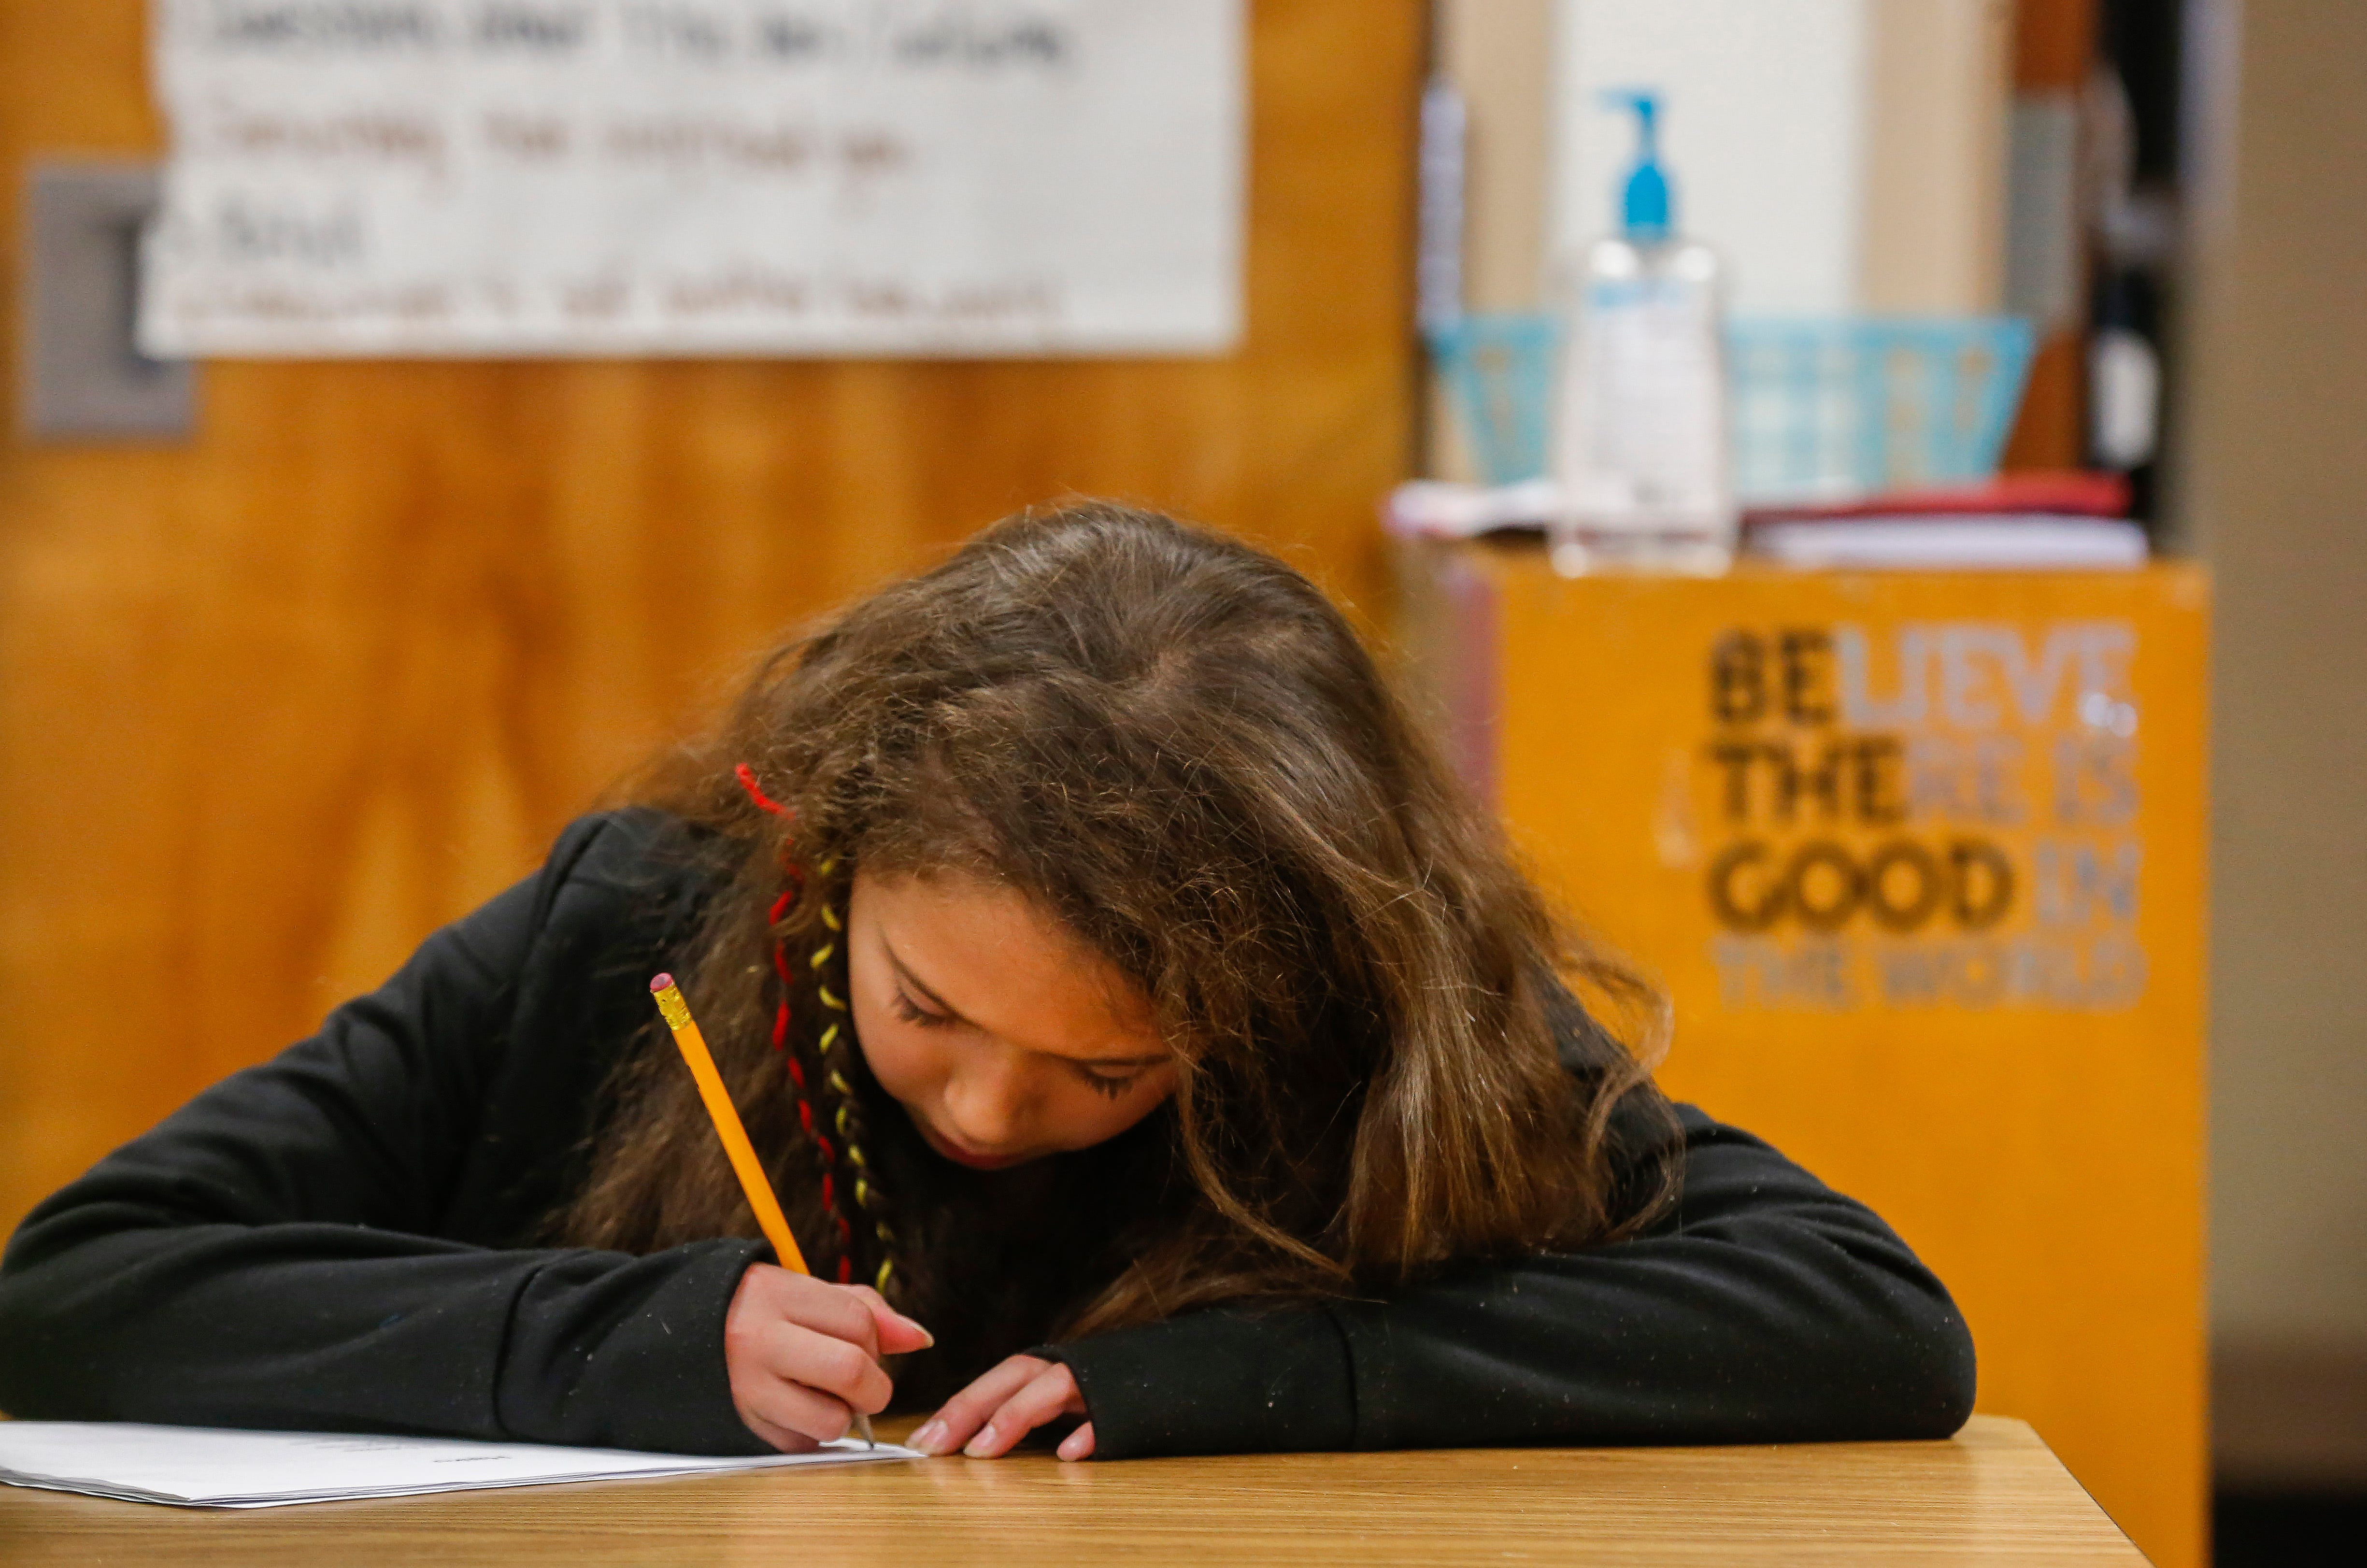 Taliste Robles-Norfolk, a third grade student at Weller Elementary School, works on a haiku during class on Thursday, Jan. 31, 2019.